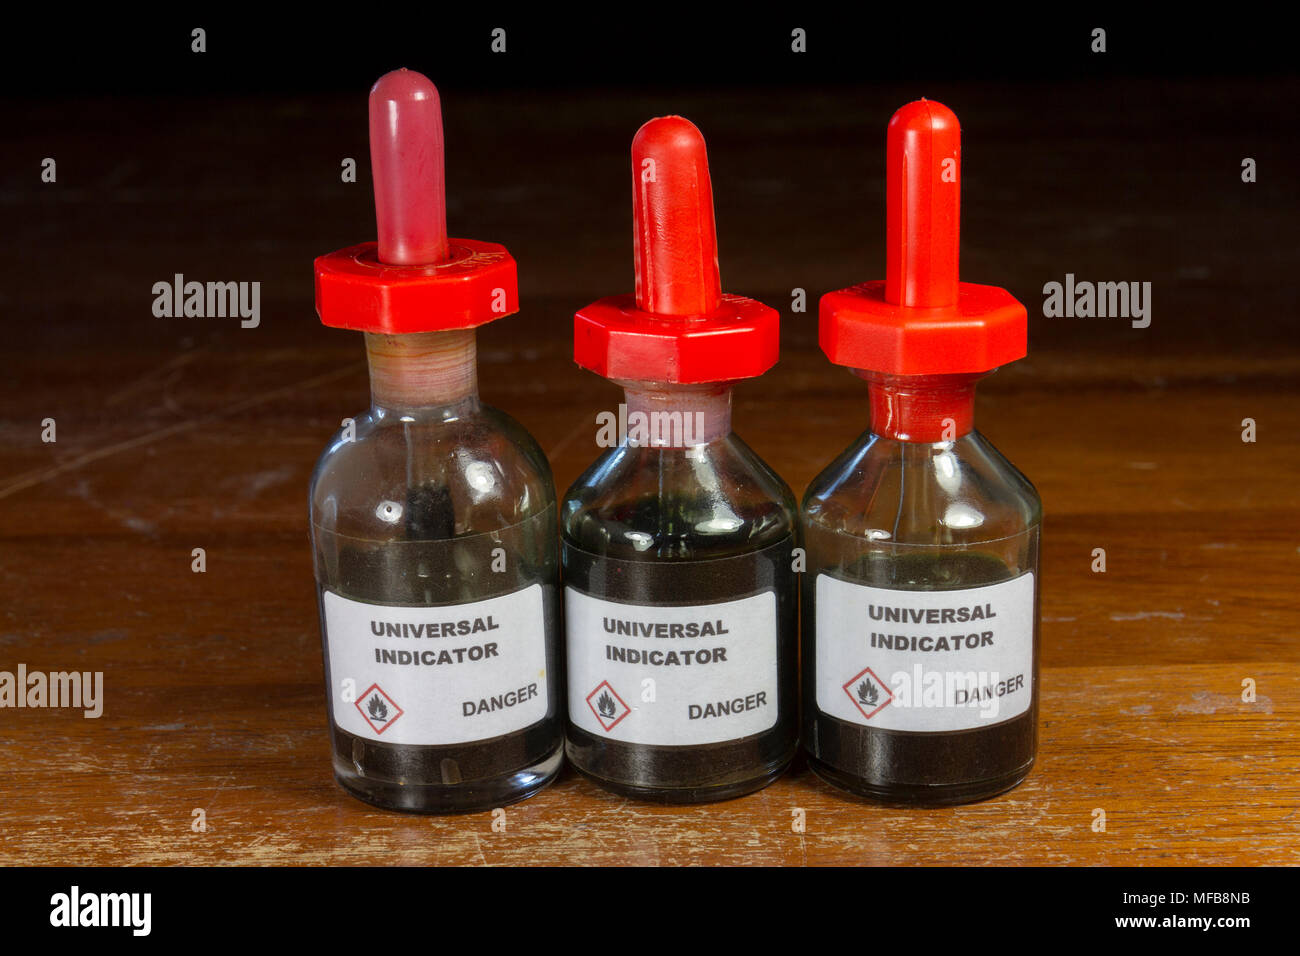 Three dropping bottles of Universal indicator liquid as used in a UK secondary/high school. - Stock Image